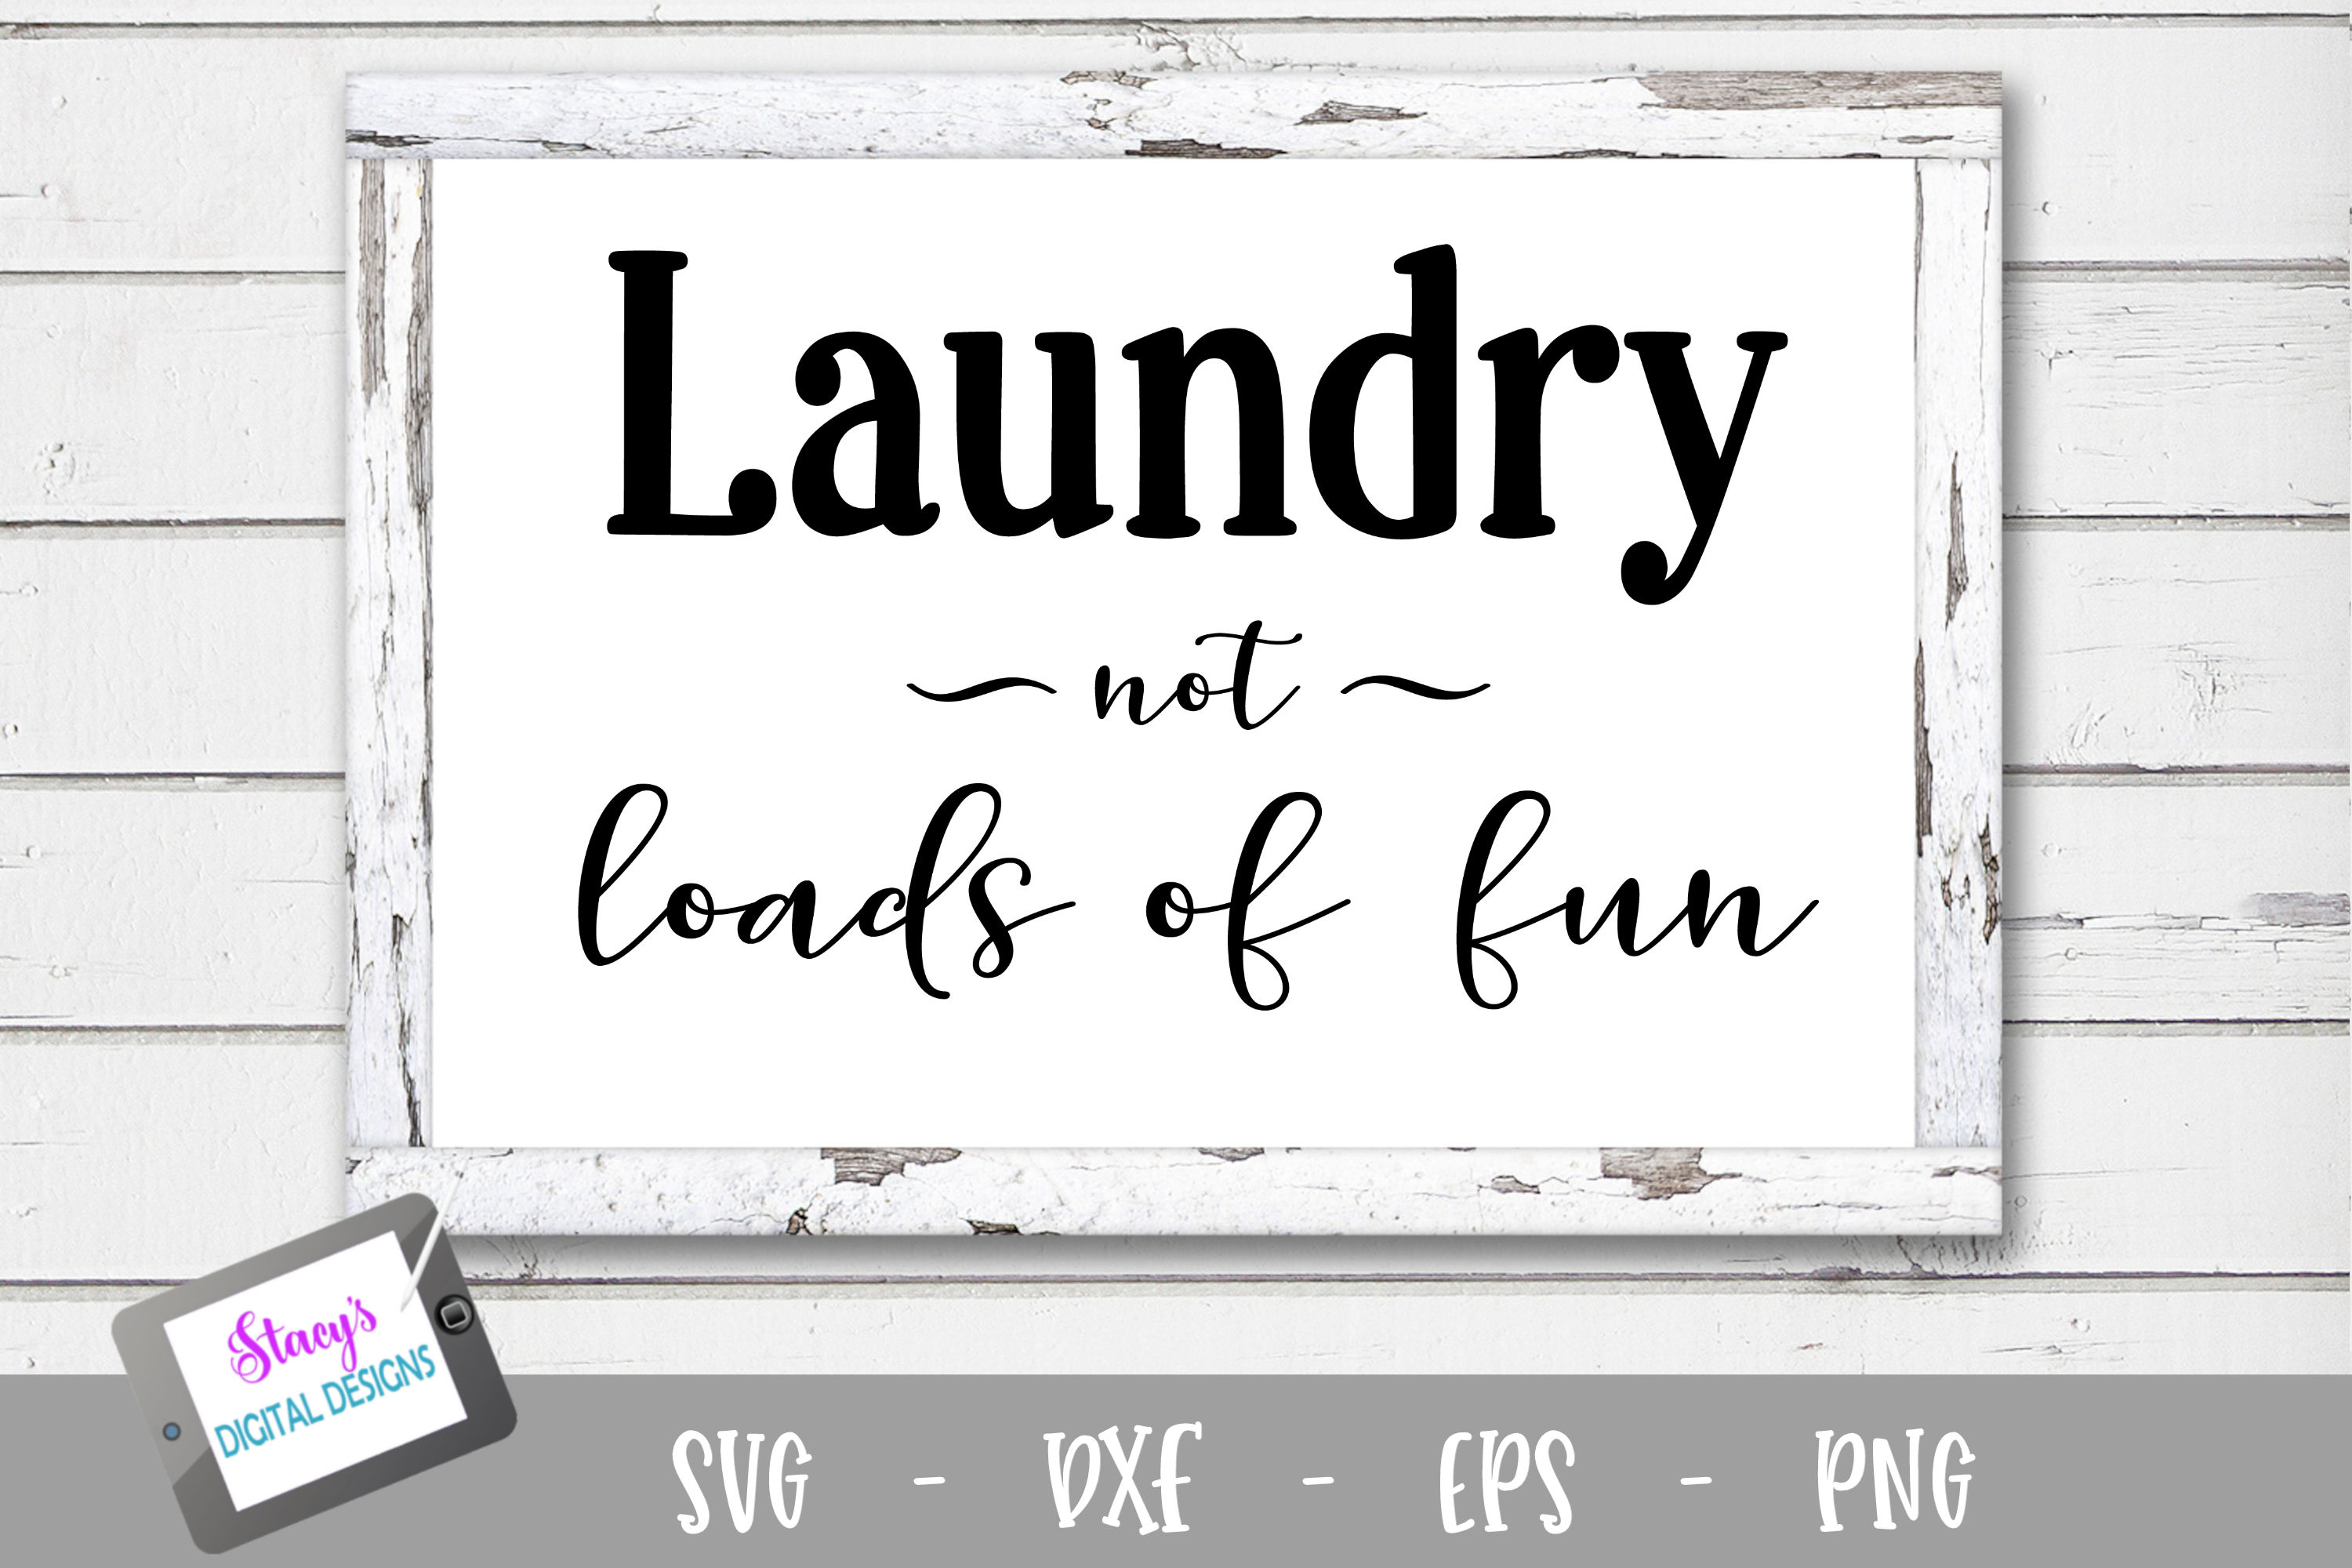 Laundry SVG - Laundry, not loads of fun example image 1